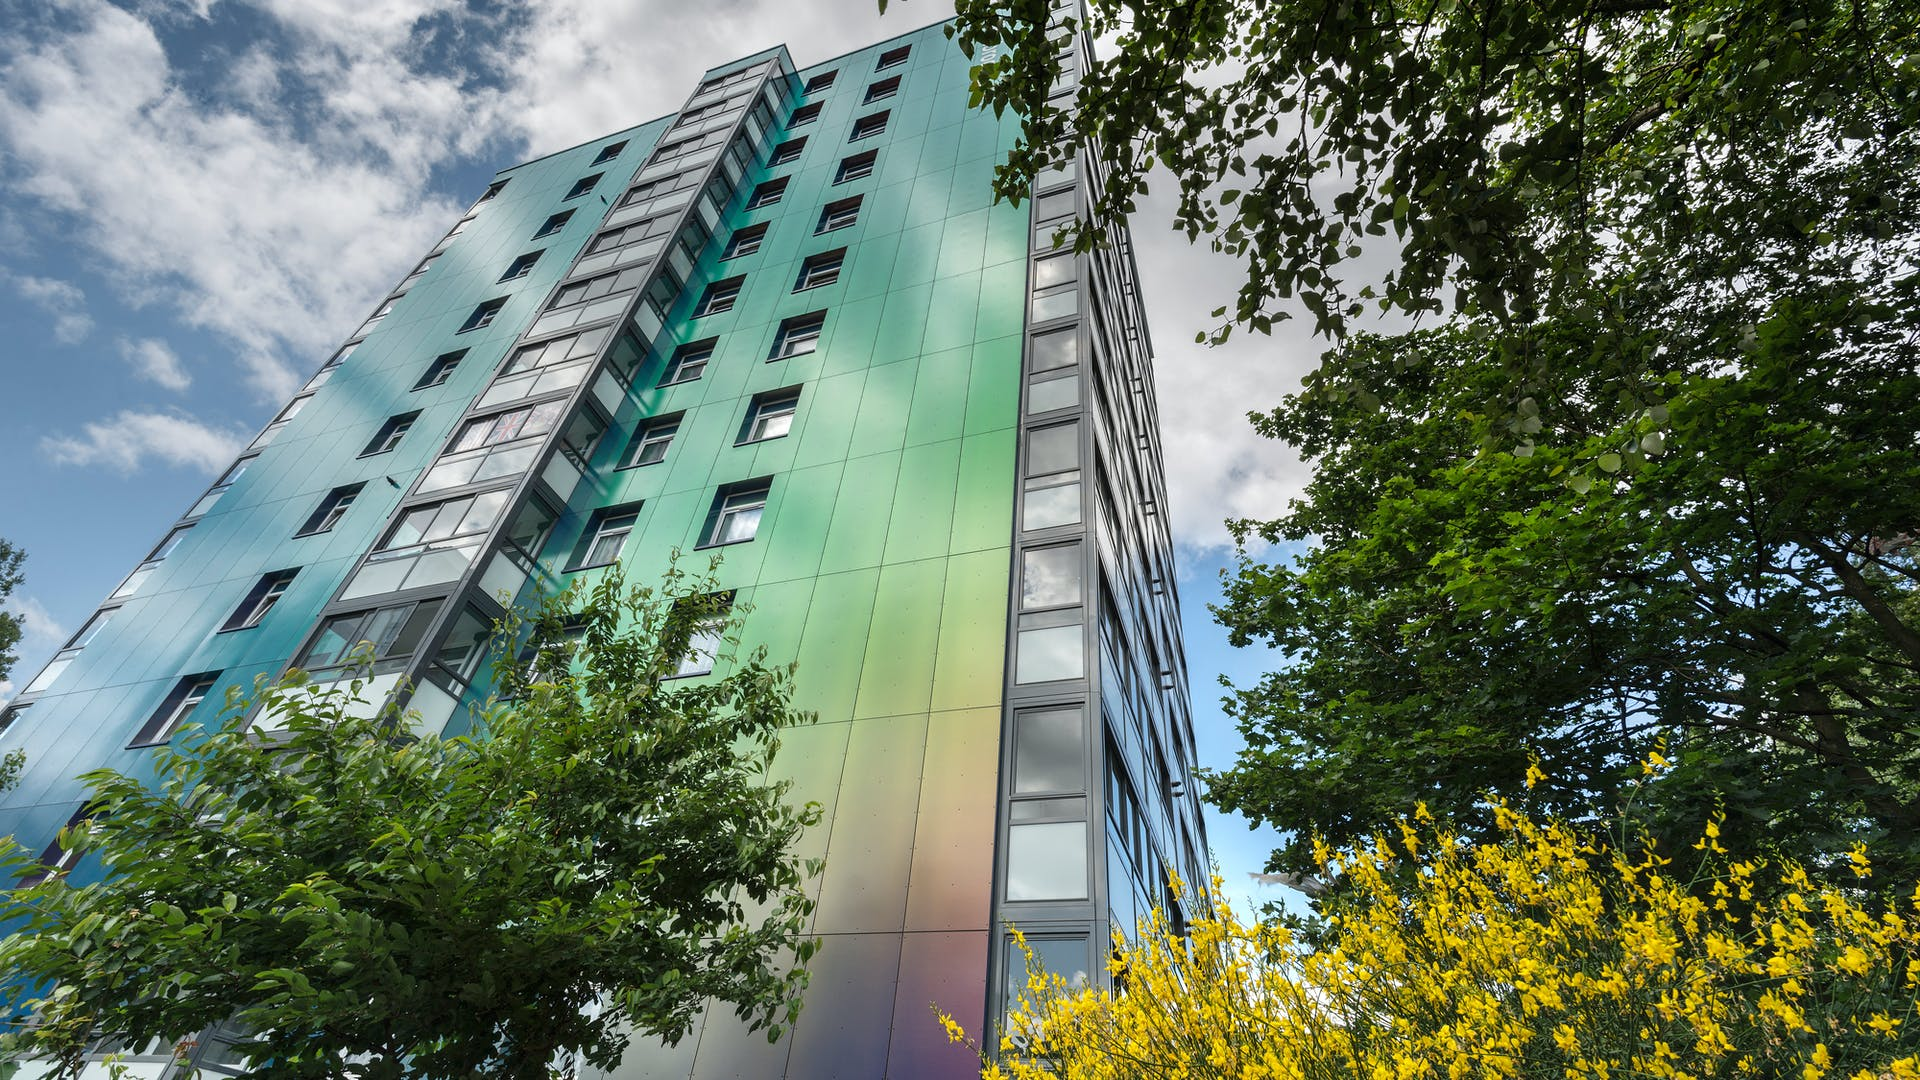 Renovation of 4 tower blocks in Manchester (Untied Kingdom) with Rockpanel Chameleon External Cladding